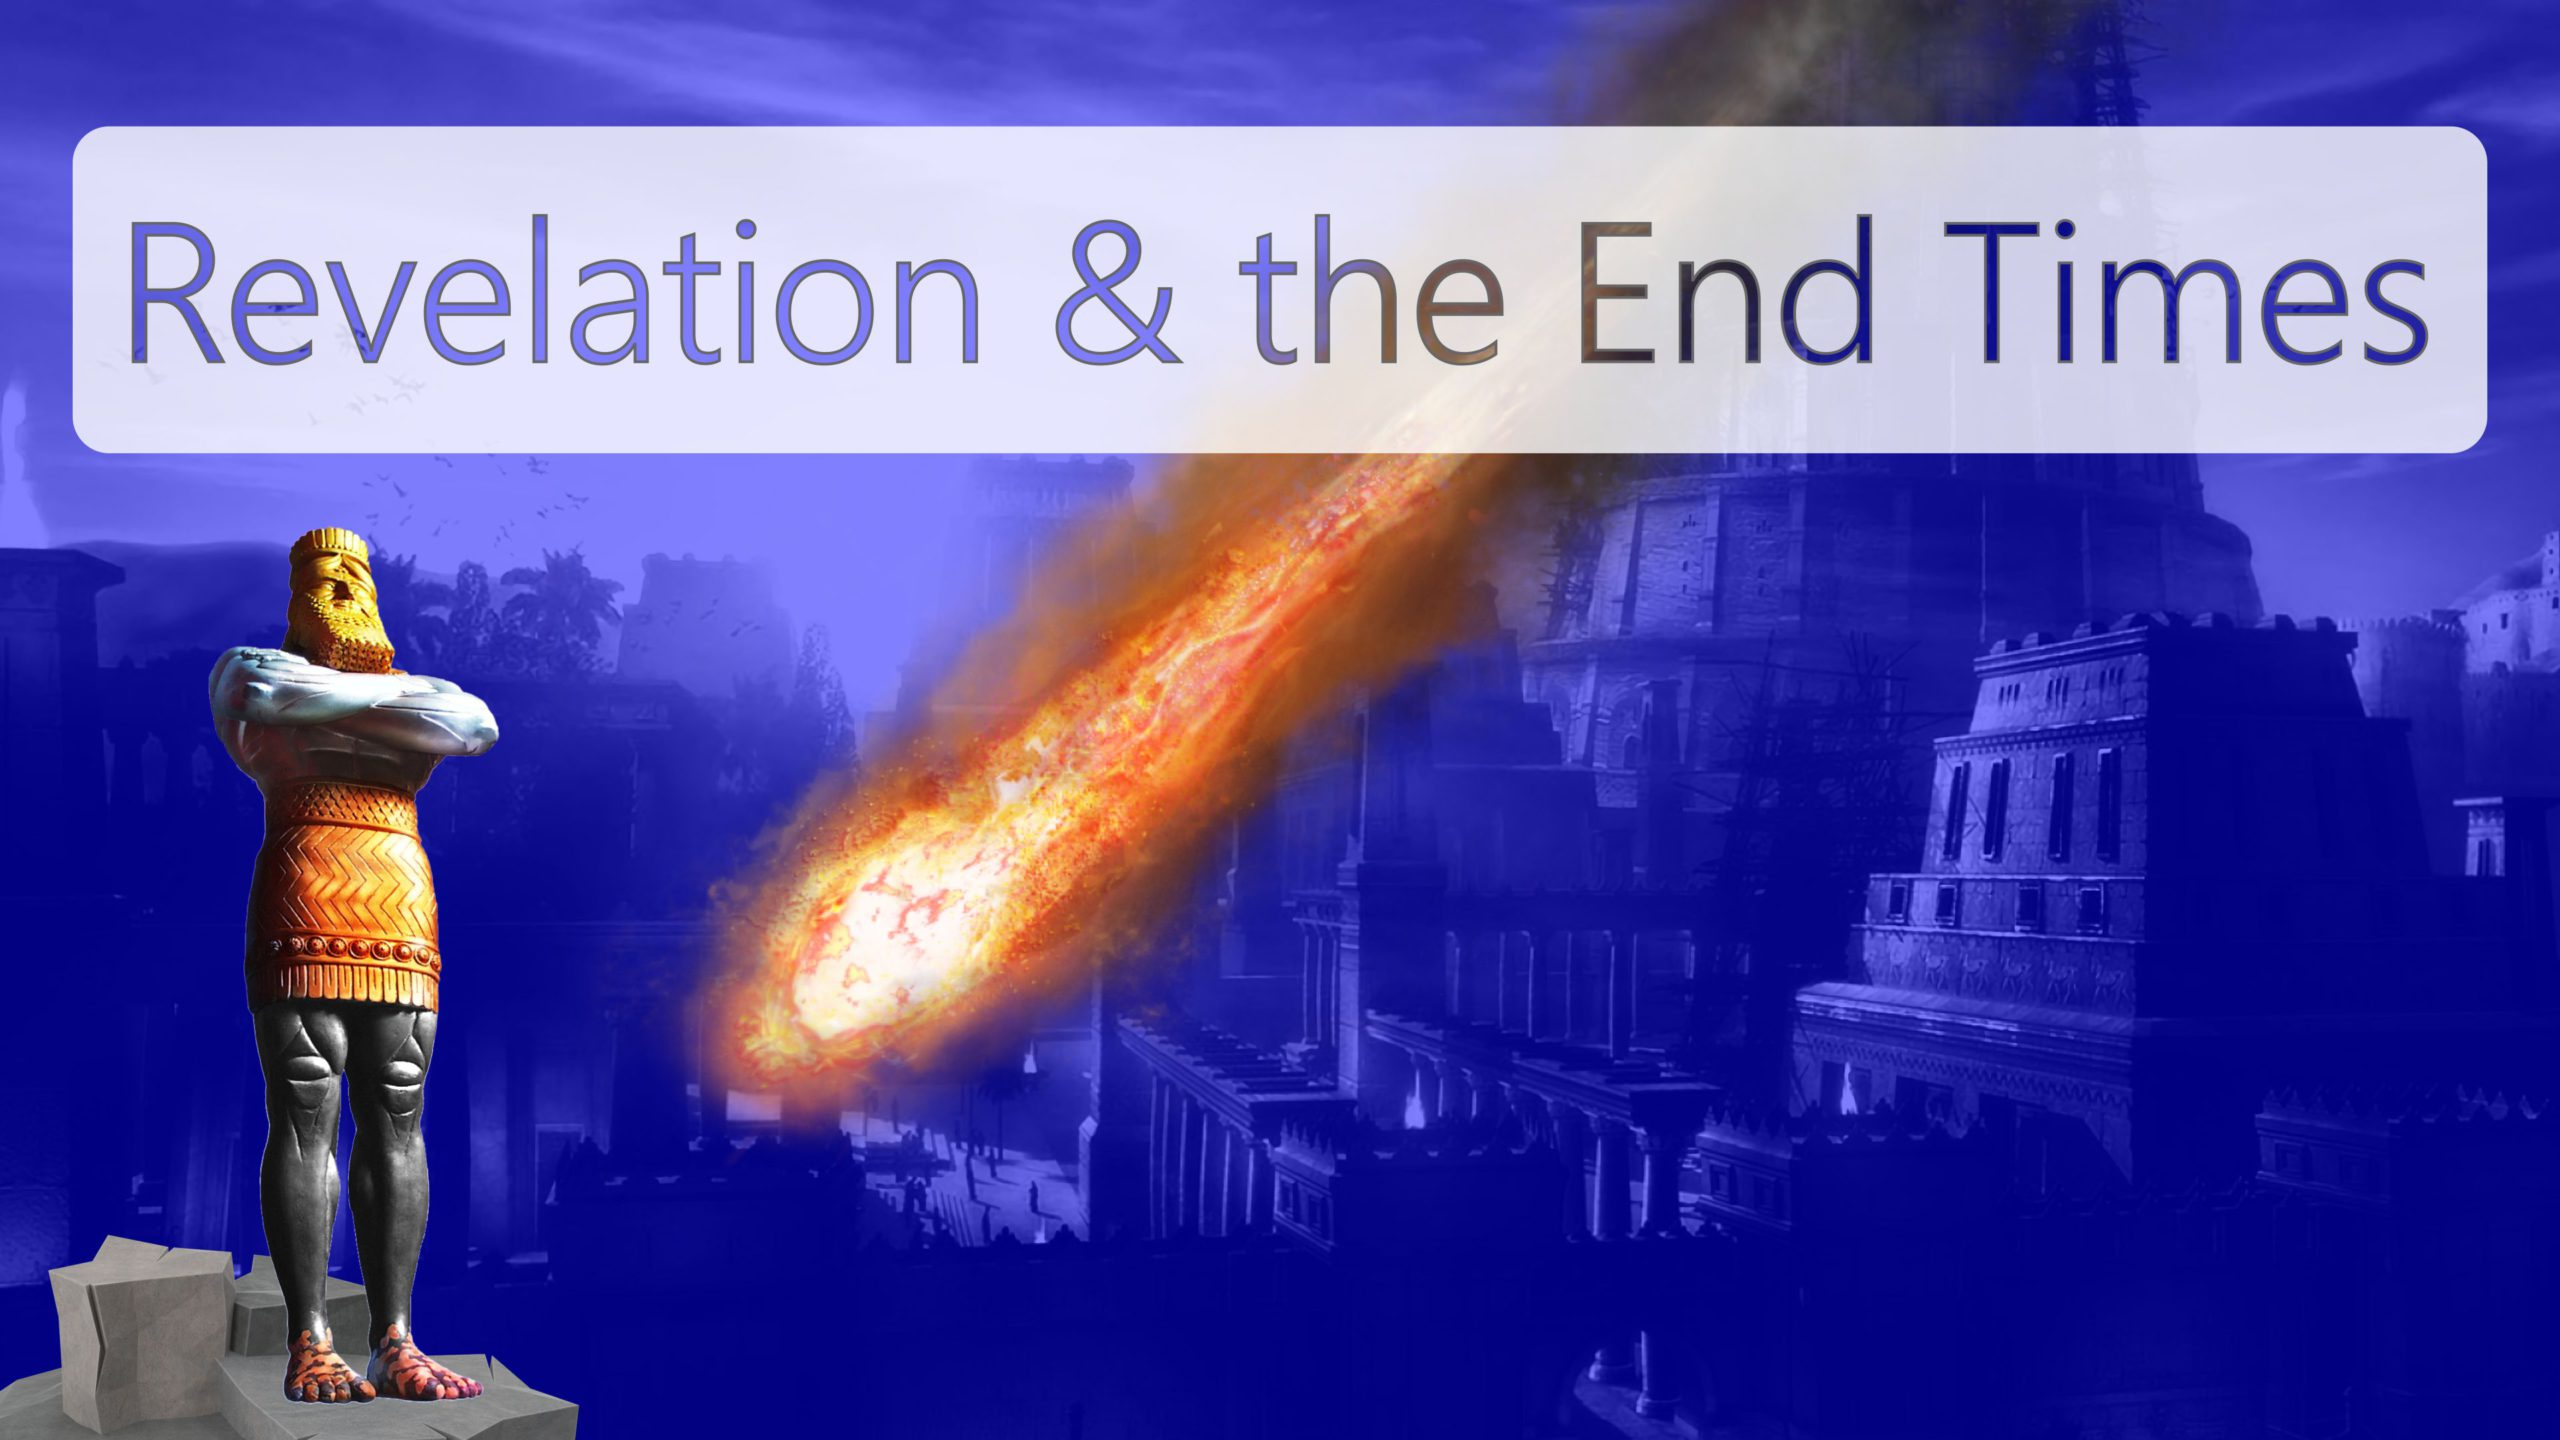 Revelation & the End Times